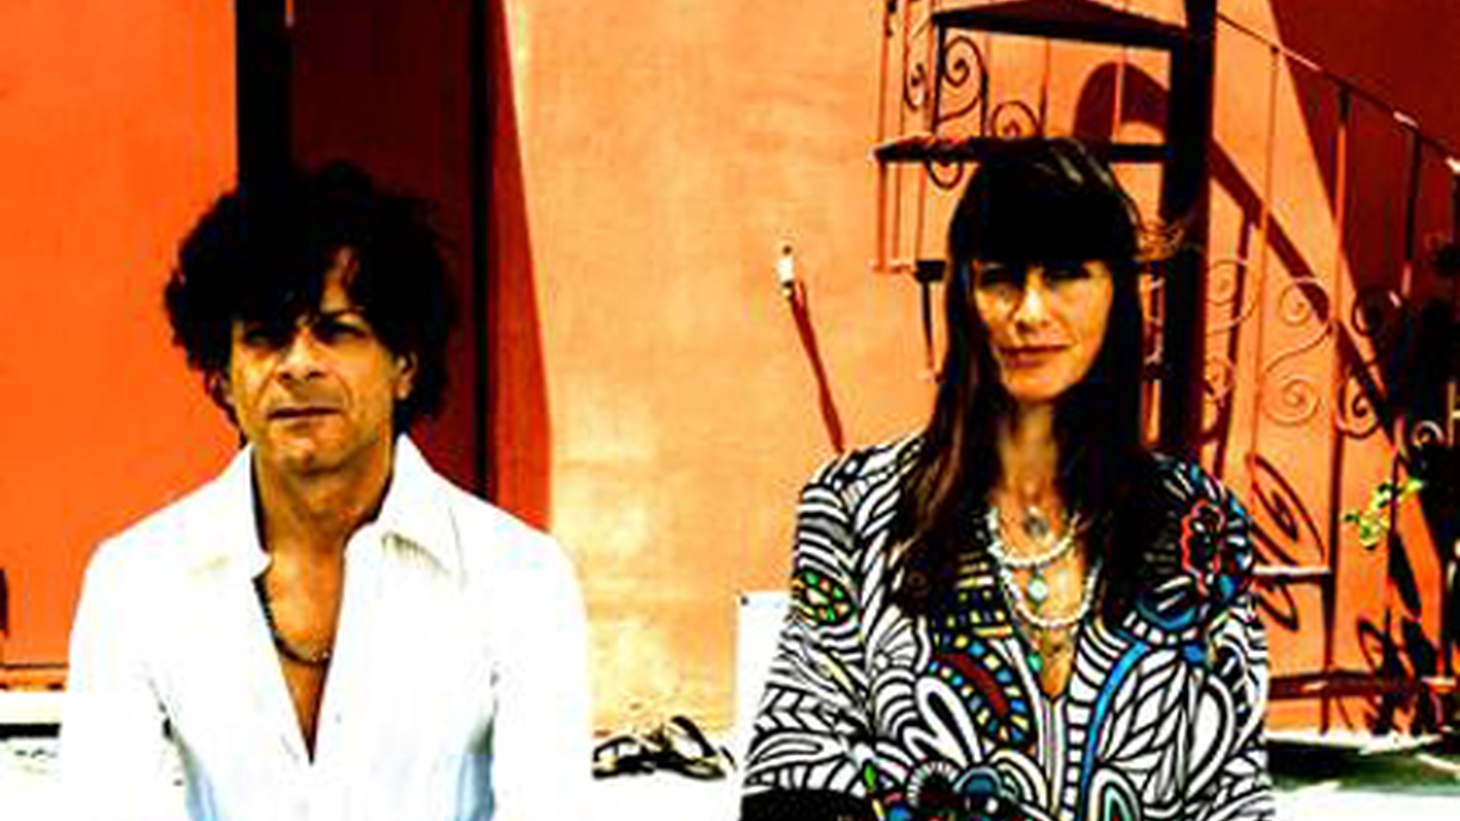 Producer and Jazz revivalist Nicola Conte collaborates with Brazilian singer Stefania Dipierro on a rich collection of songs showcasing originals and standards in her sultry Bossa stylings.